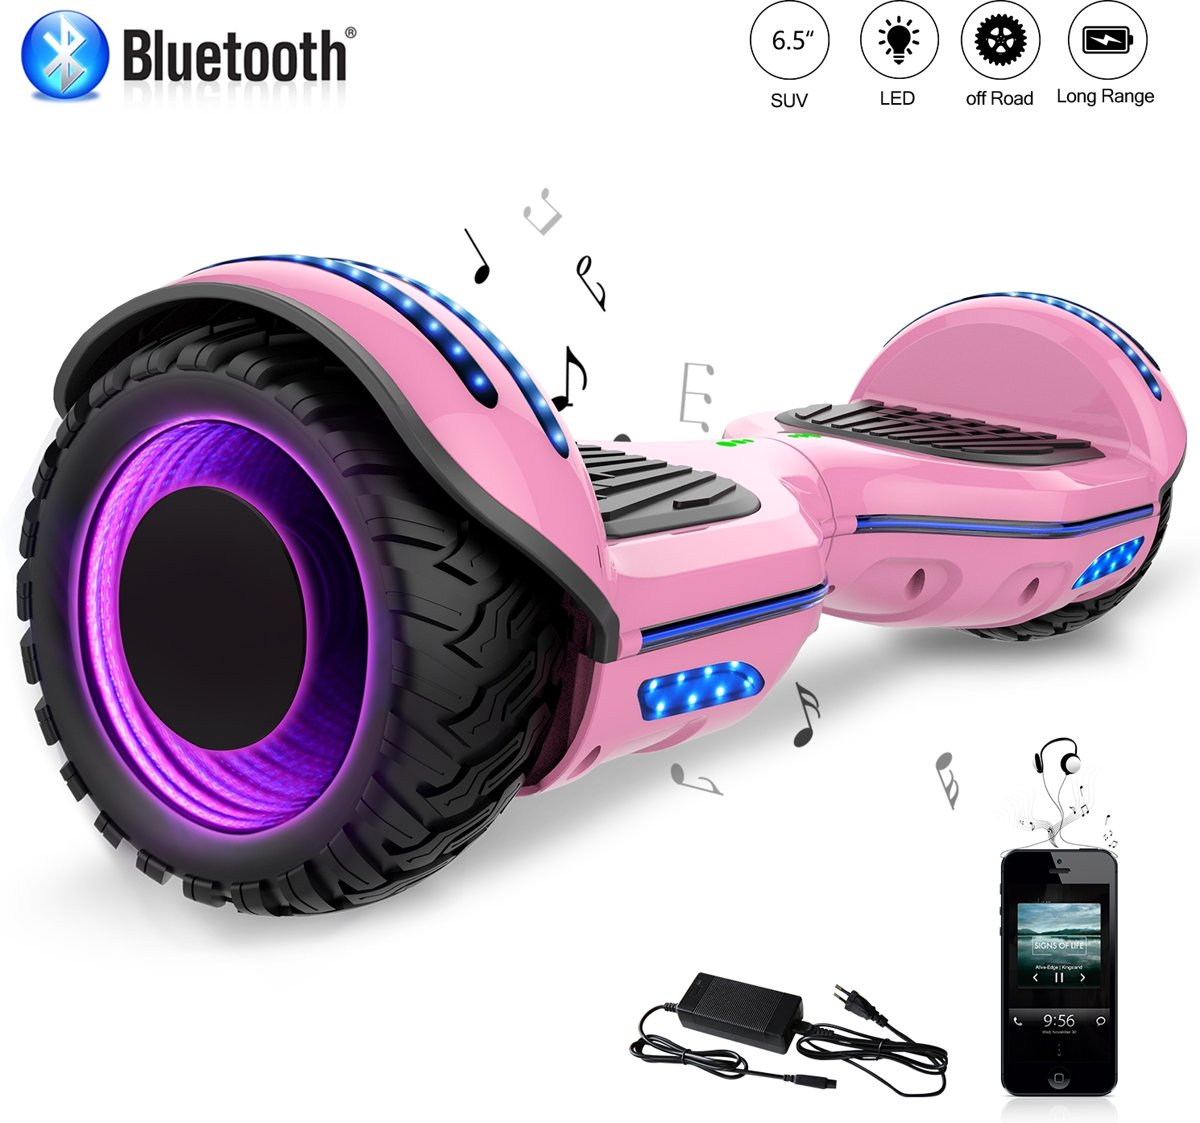 Evercross Hoverboard SUV 6.5 inch met Flits Wielen, Gyropode Off-Road met TAOTAO moederbord, Bluetooth Speaker, LED-lamp, CE gecertificeerd